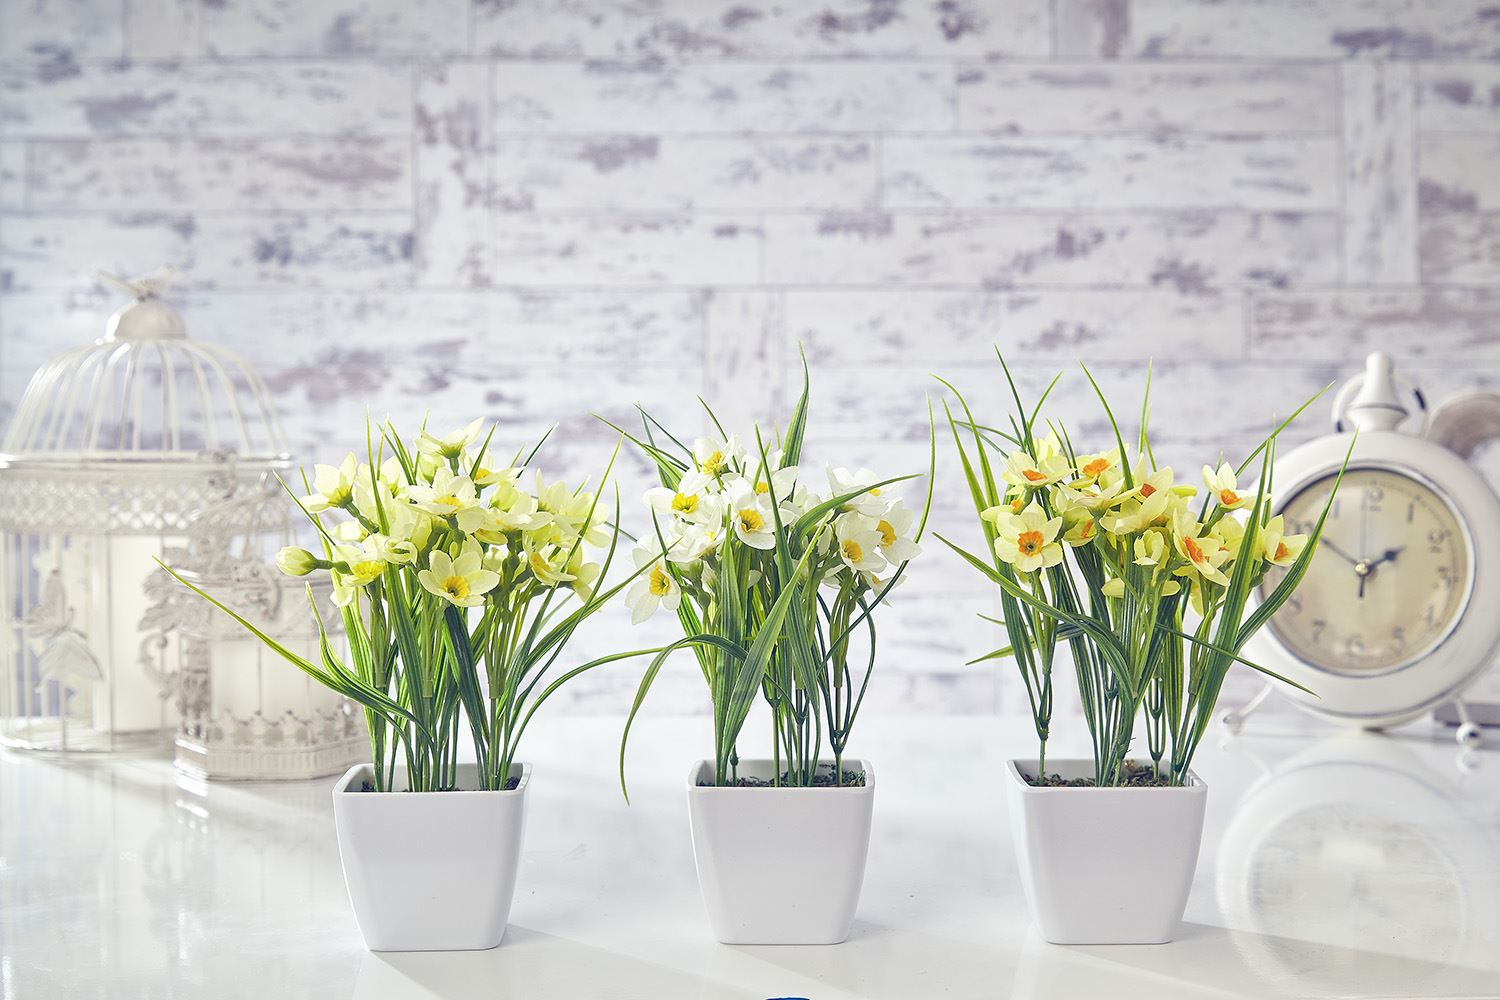 Artificial Daffodil Flowers Plants In Pot Grass Home Decor